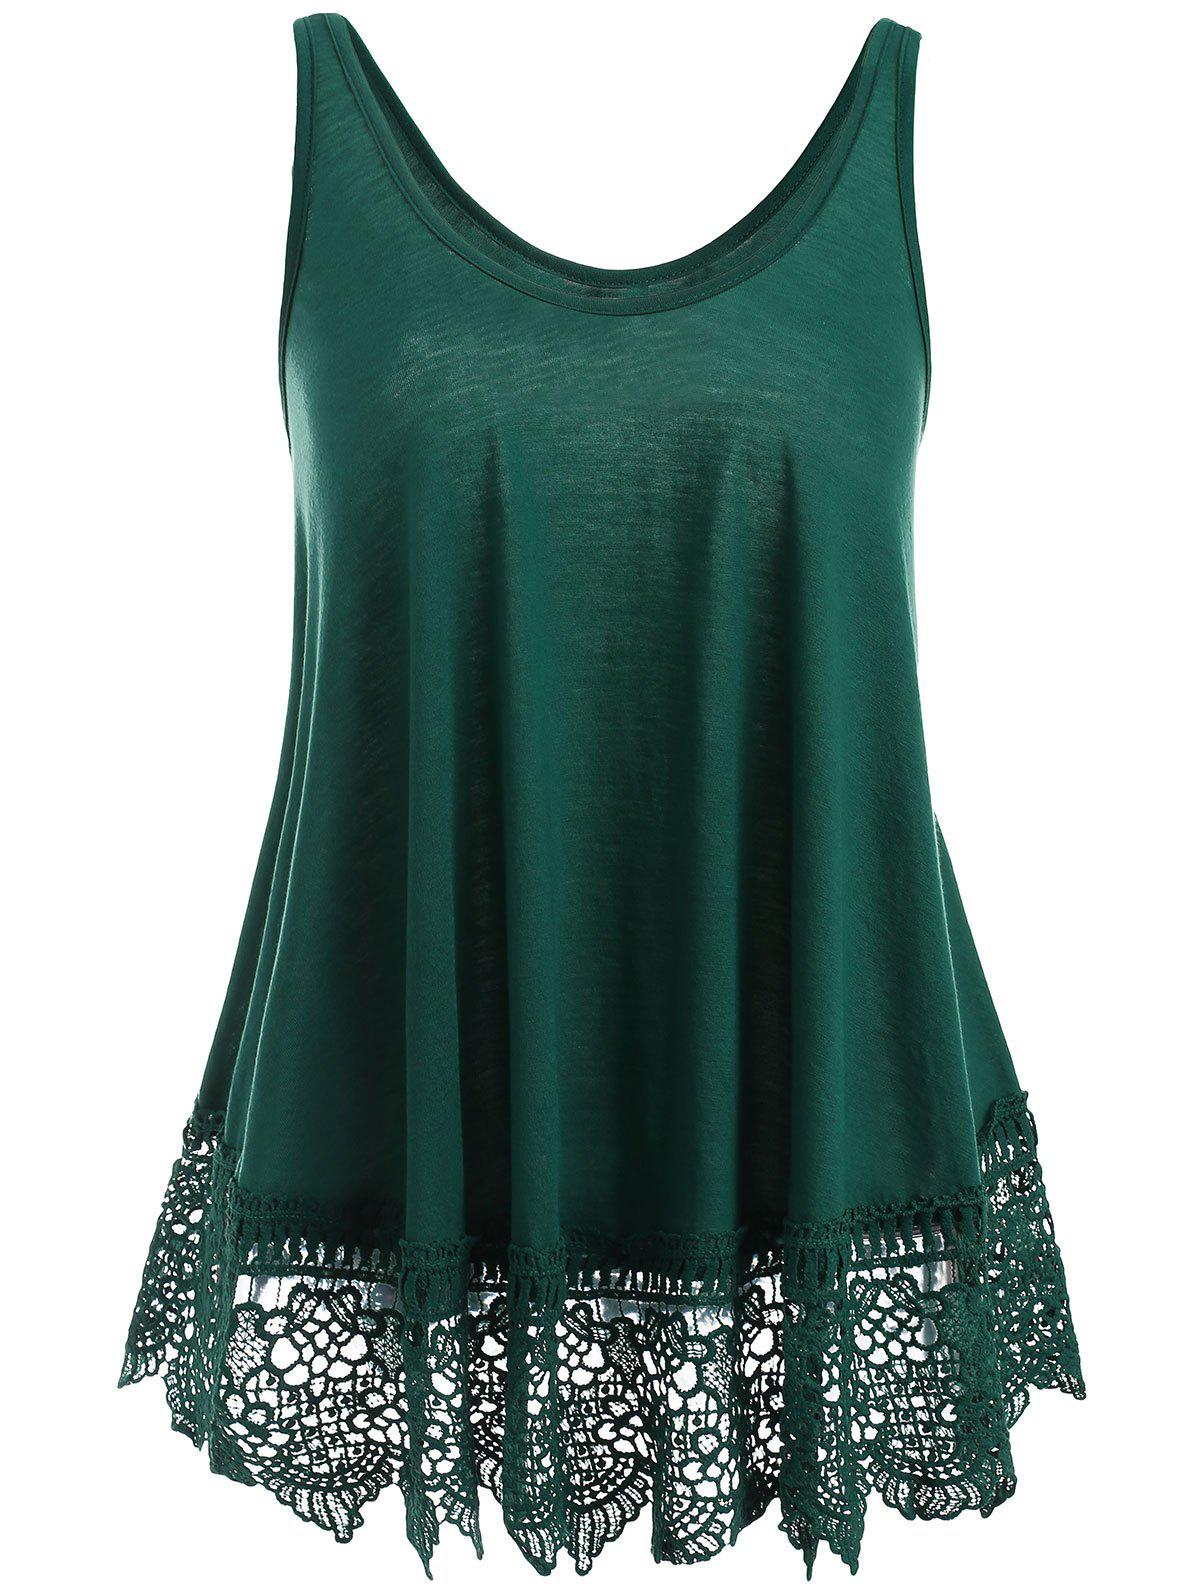 Online Lace Panel U Neck Tank Top